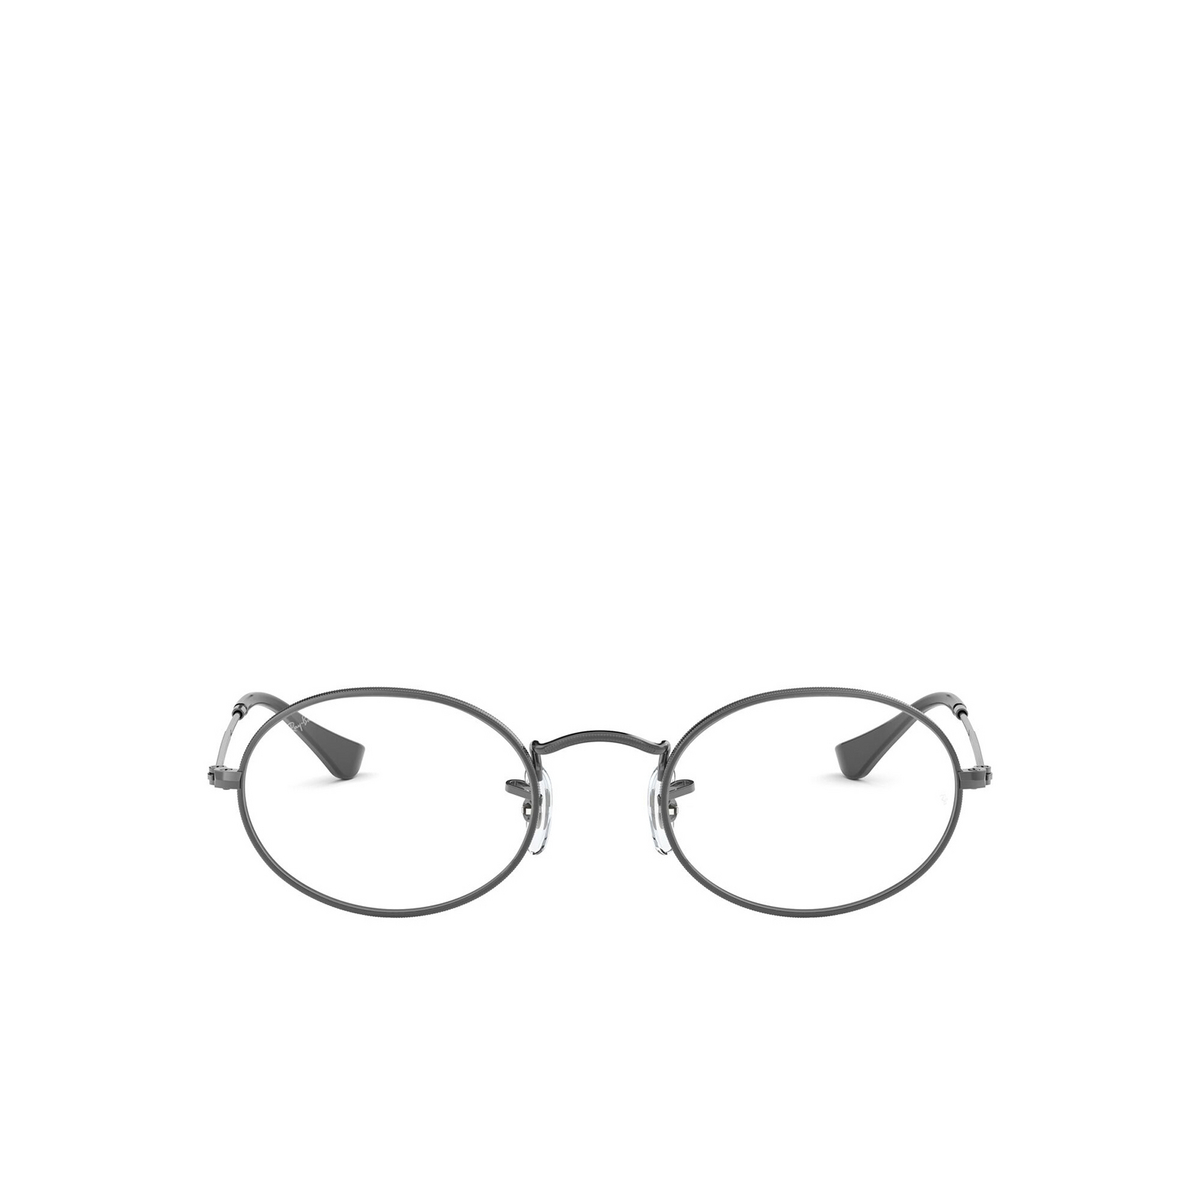 Ray-Ban® Oval Eyeglasses: Oval RX3547V color Gunmetal 2502 - front view.